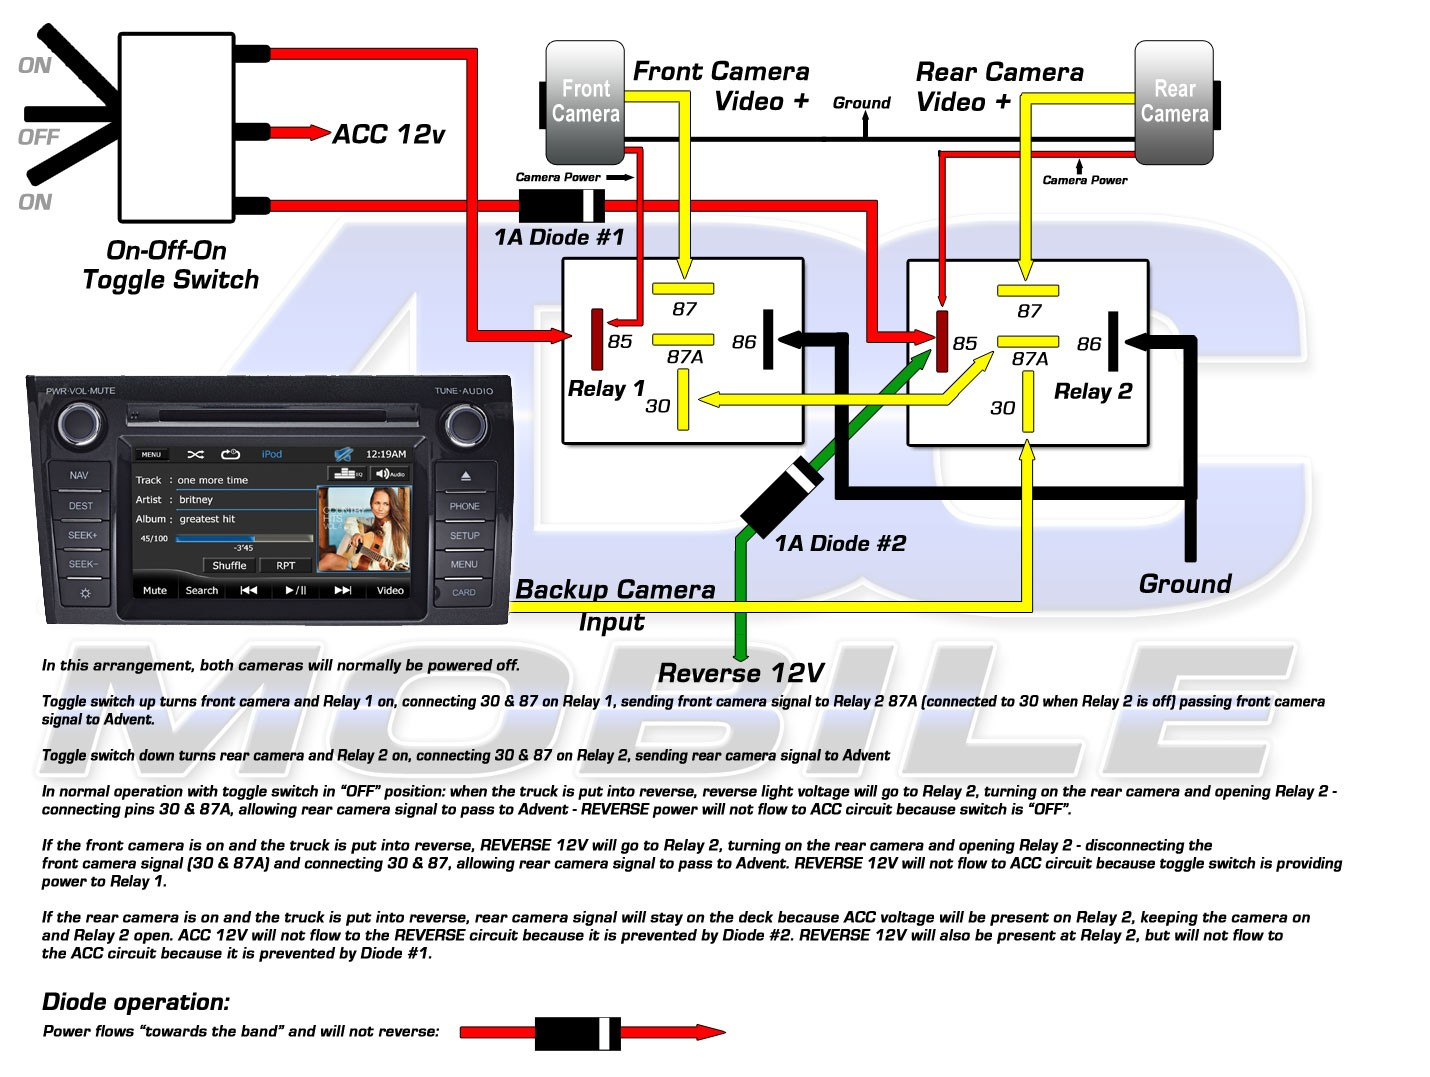 Backup Camera Wiring Diagram Look Rightcamera Tundra Front Rear Relays1 How To Relocate Trailer Plug